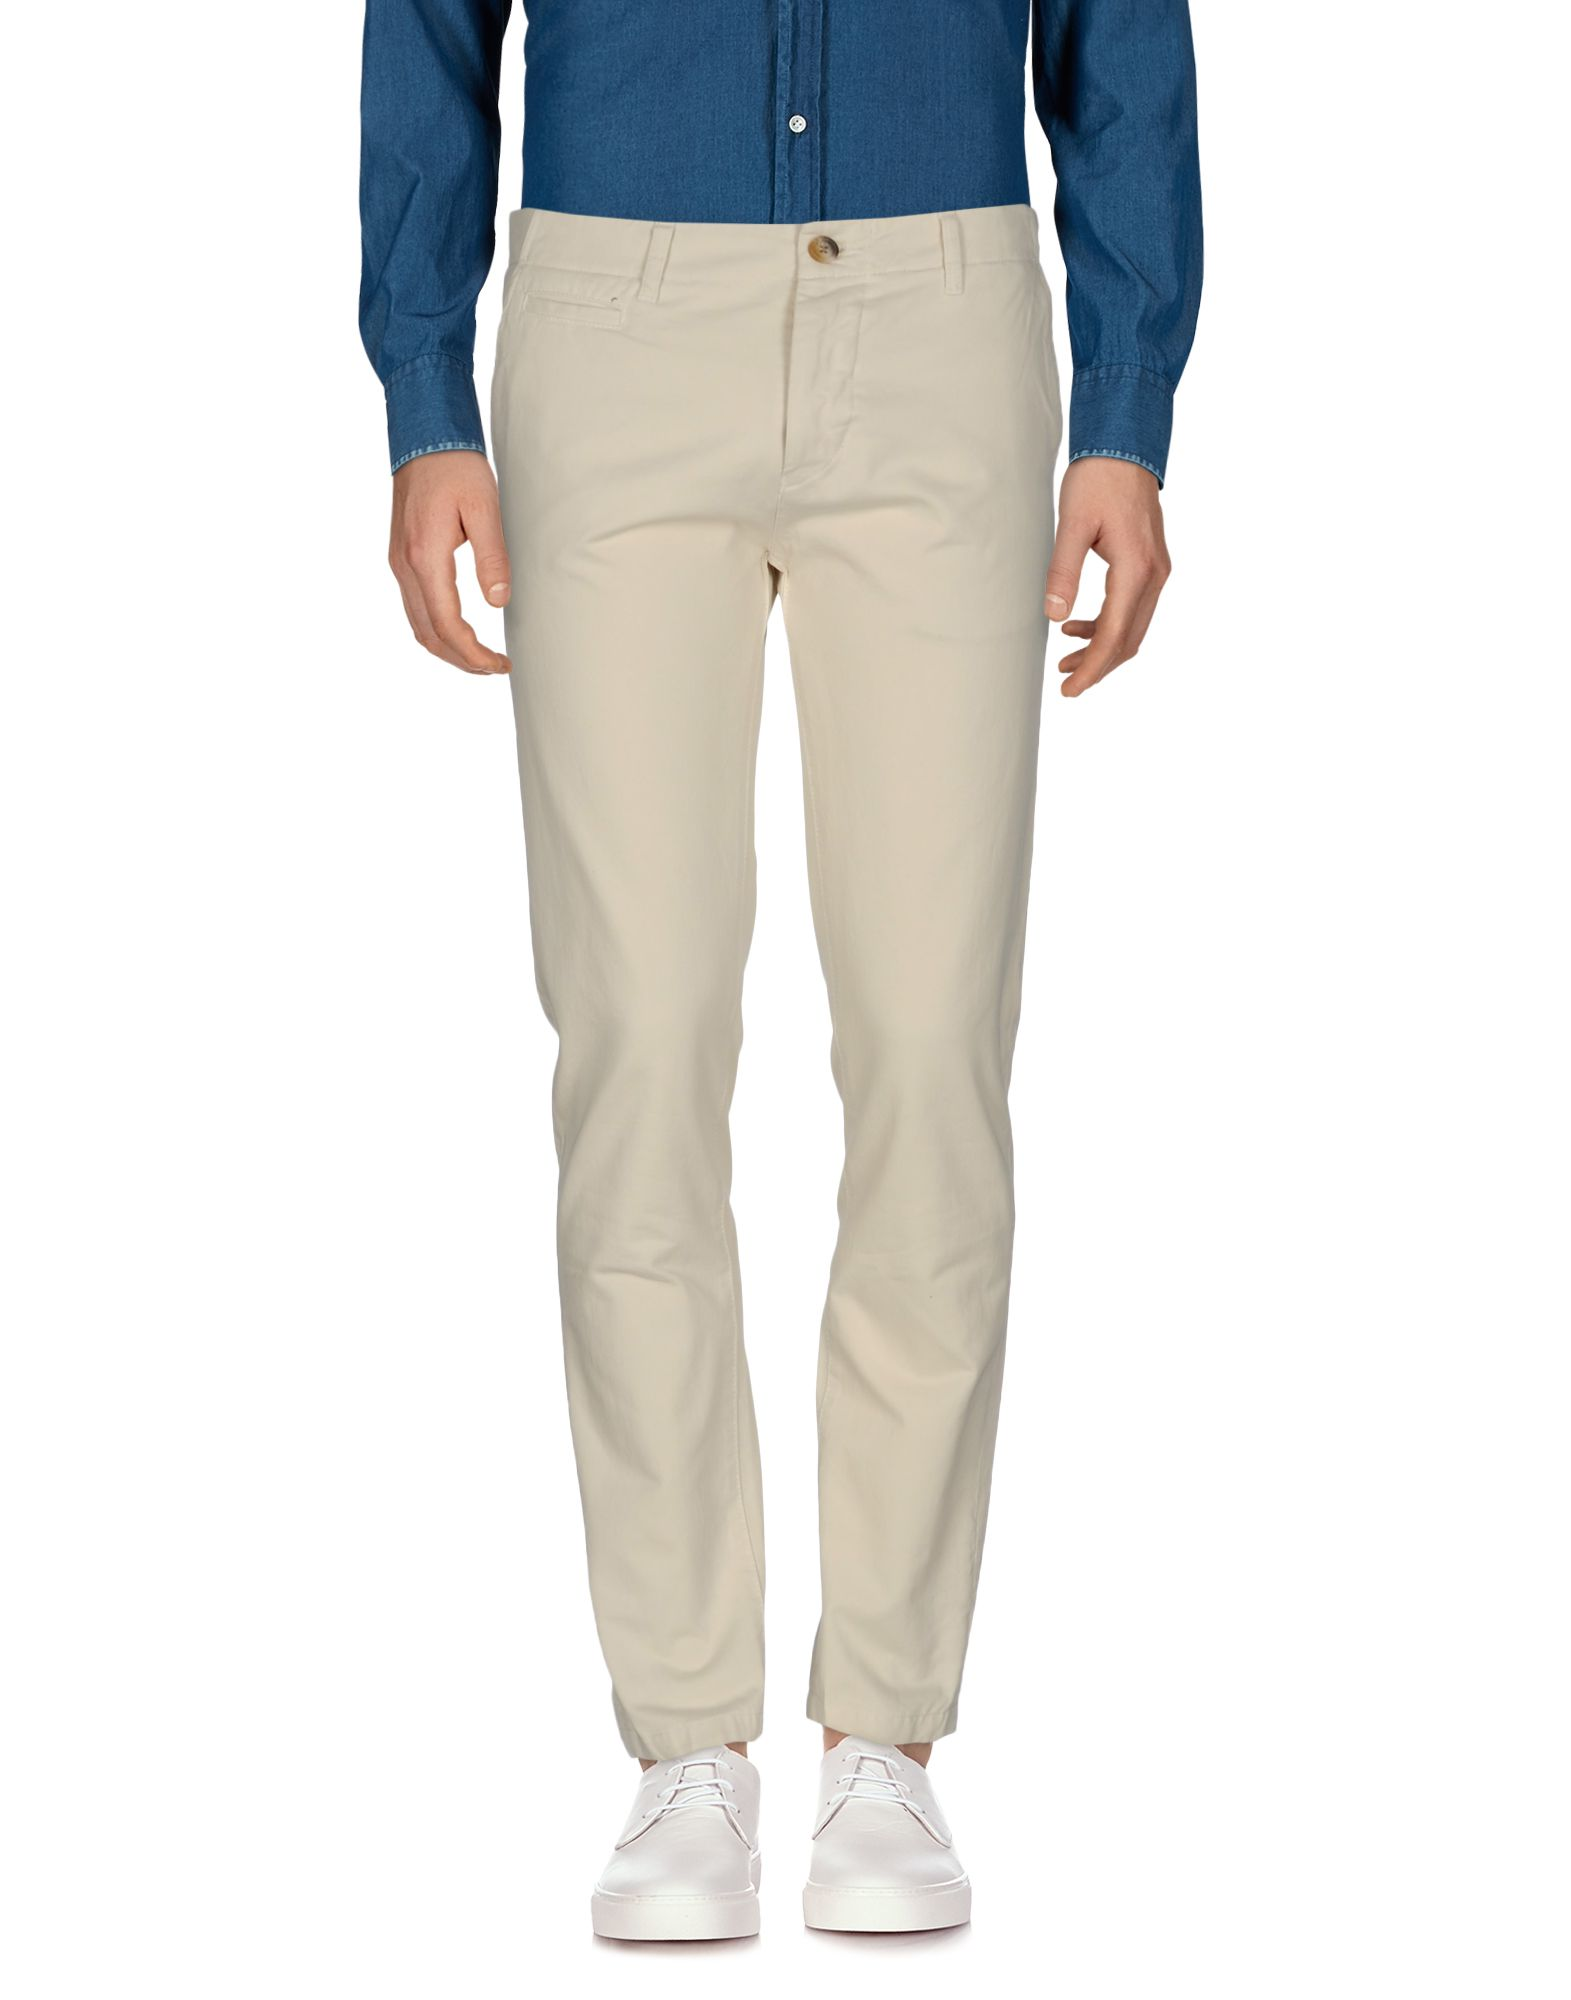 CUISSE DE GRENOUILLE Casual Pants in Ivory